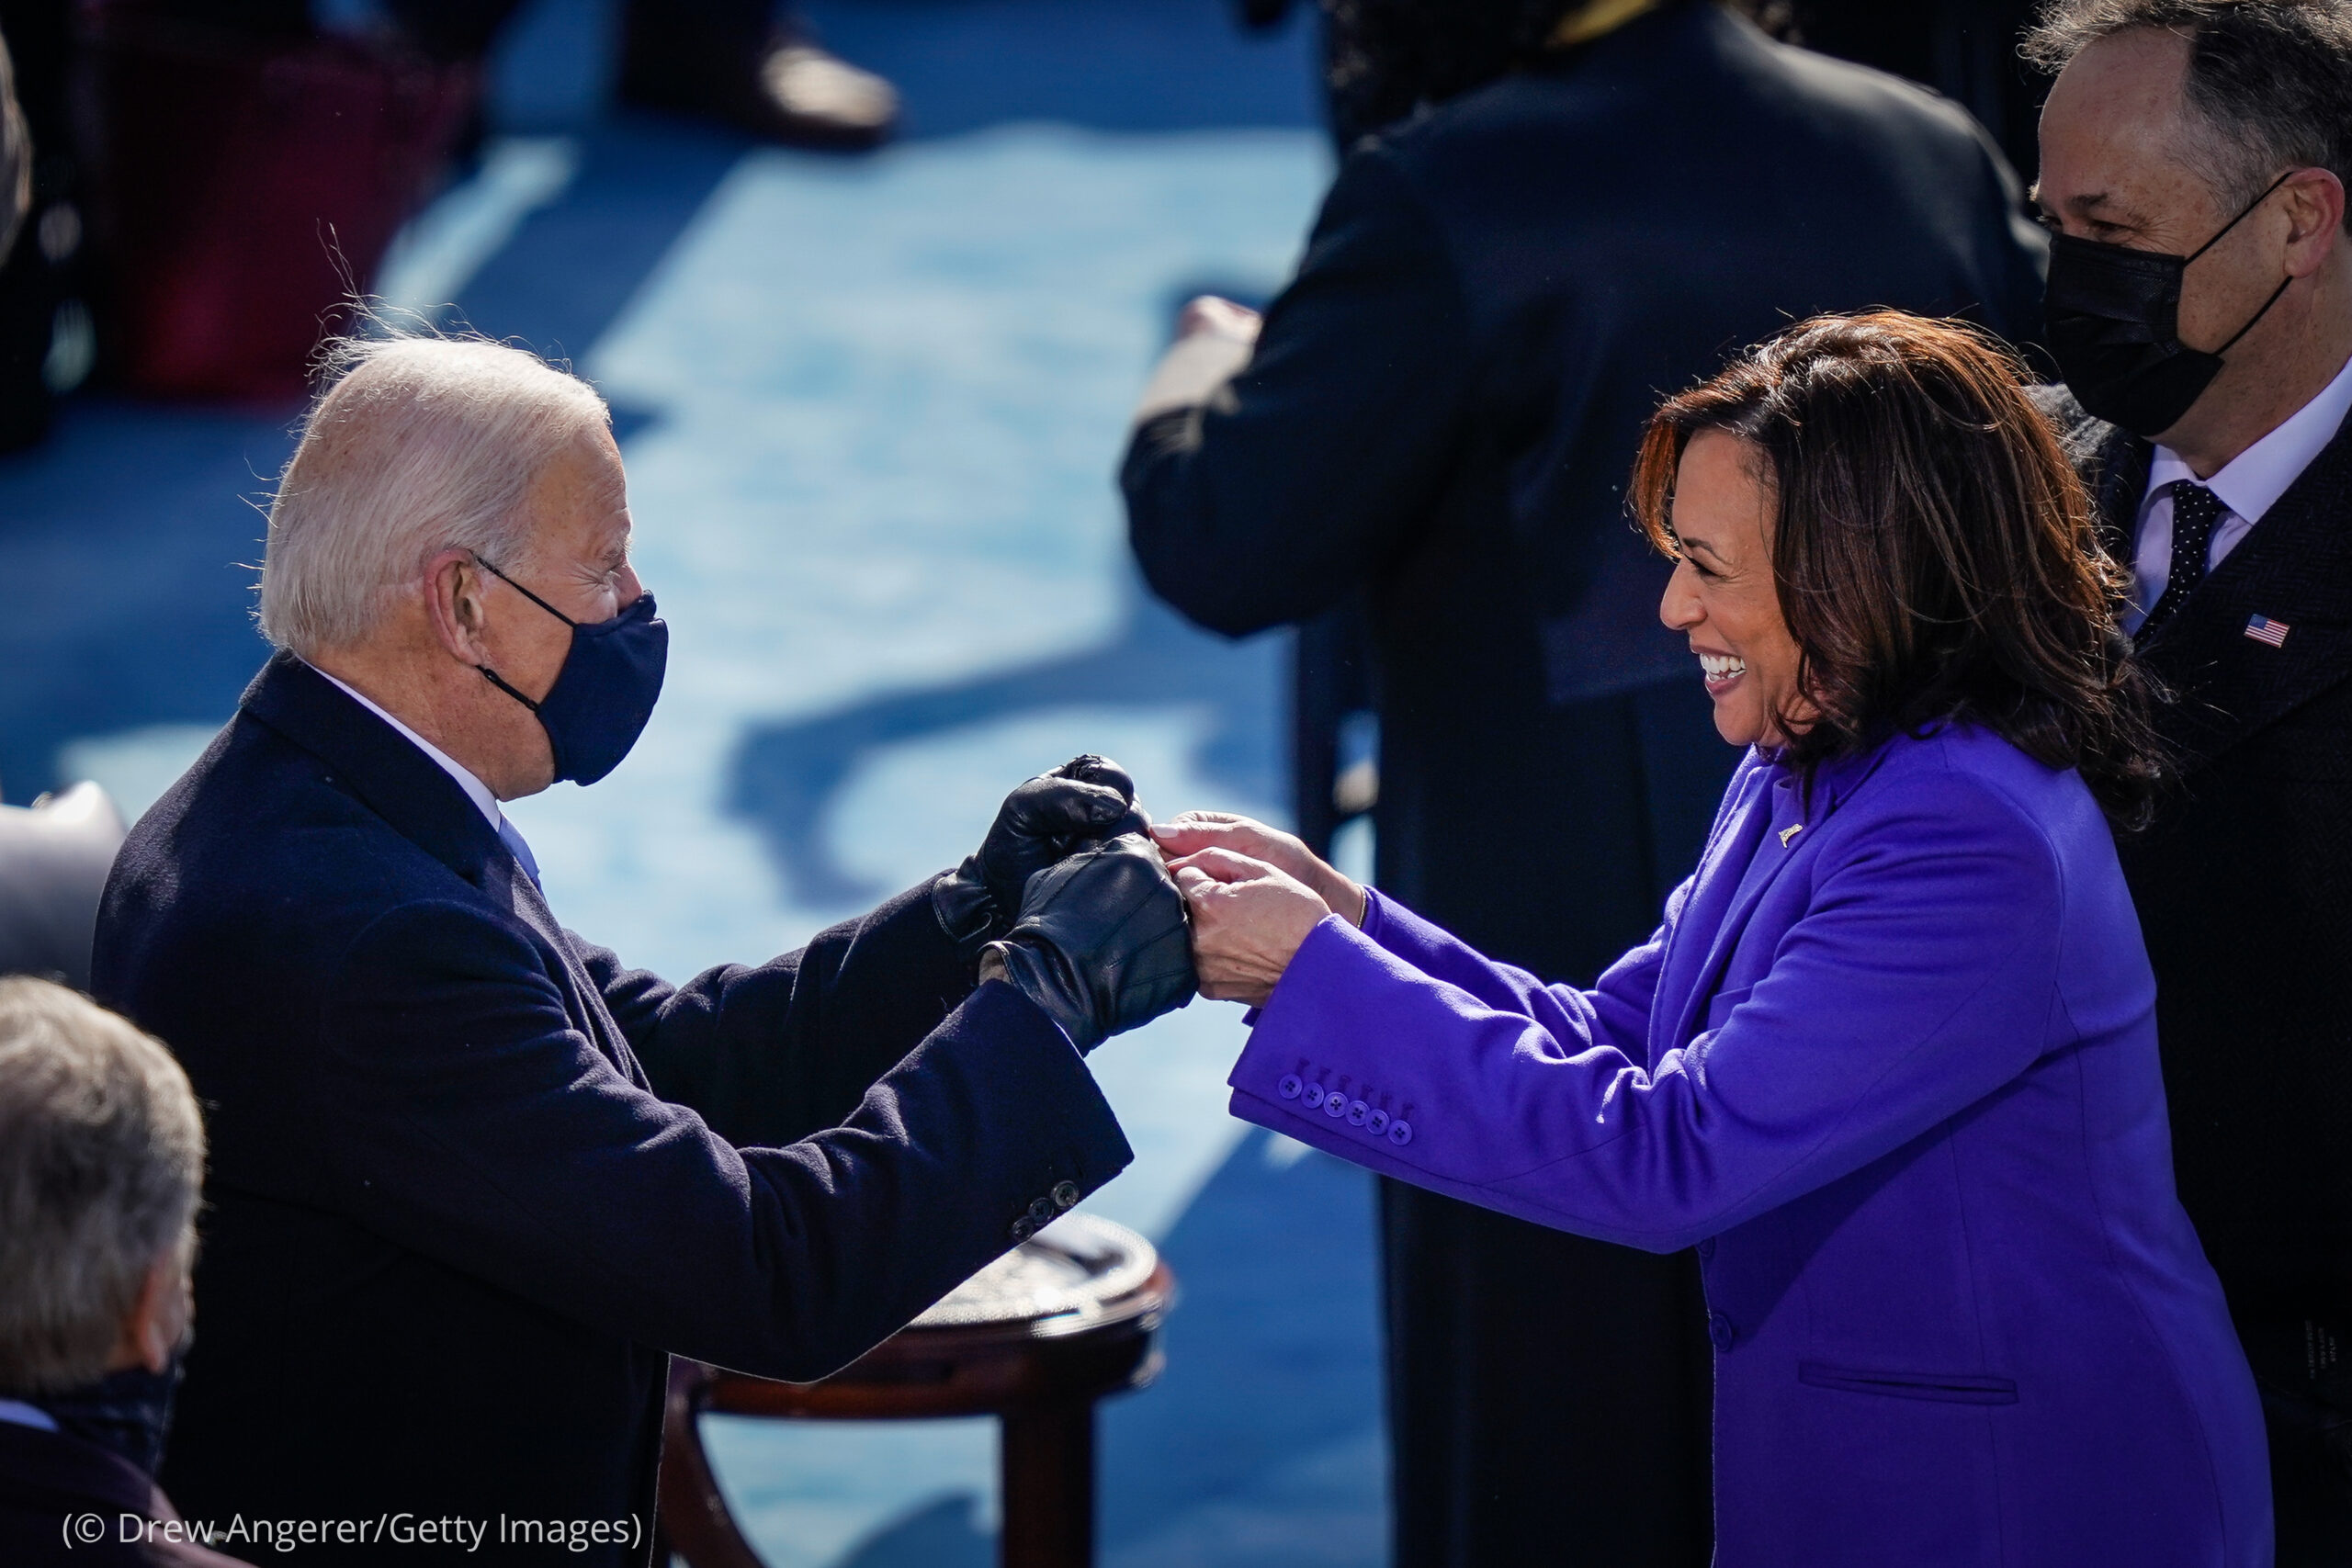 Joe Biden fist bumping with Kamala Harris at inauguration (© Drew Angerer/Getty Images)